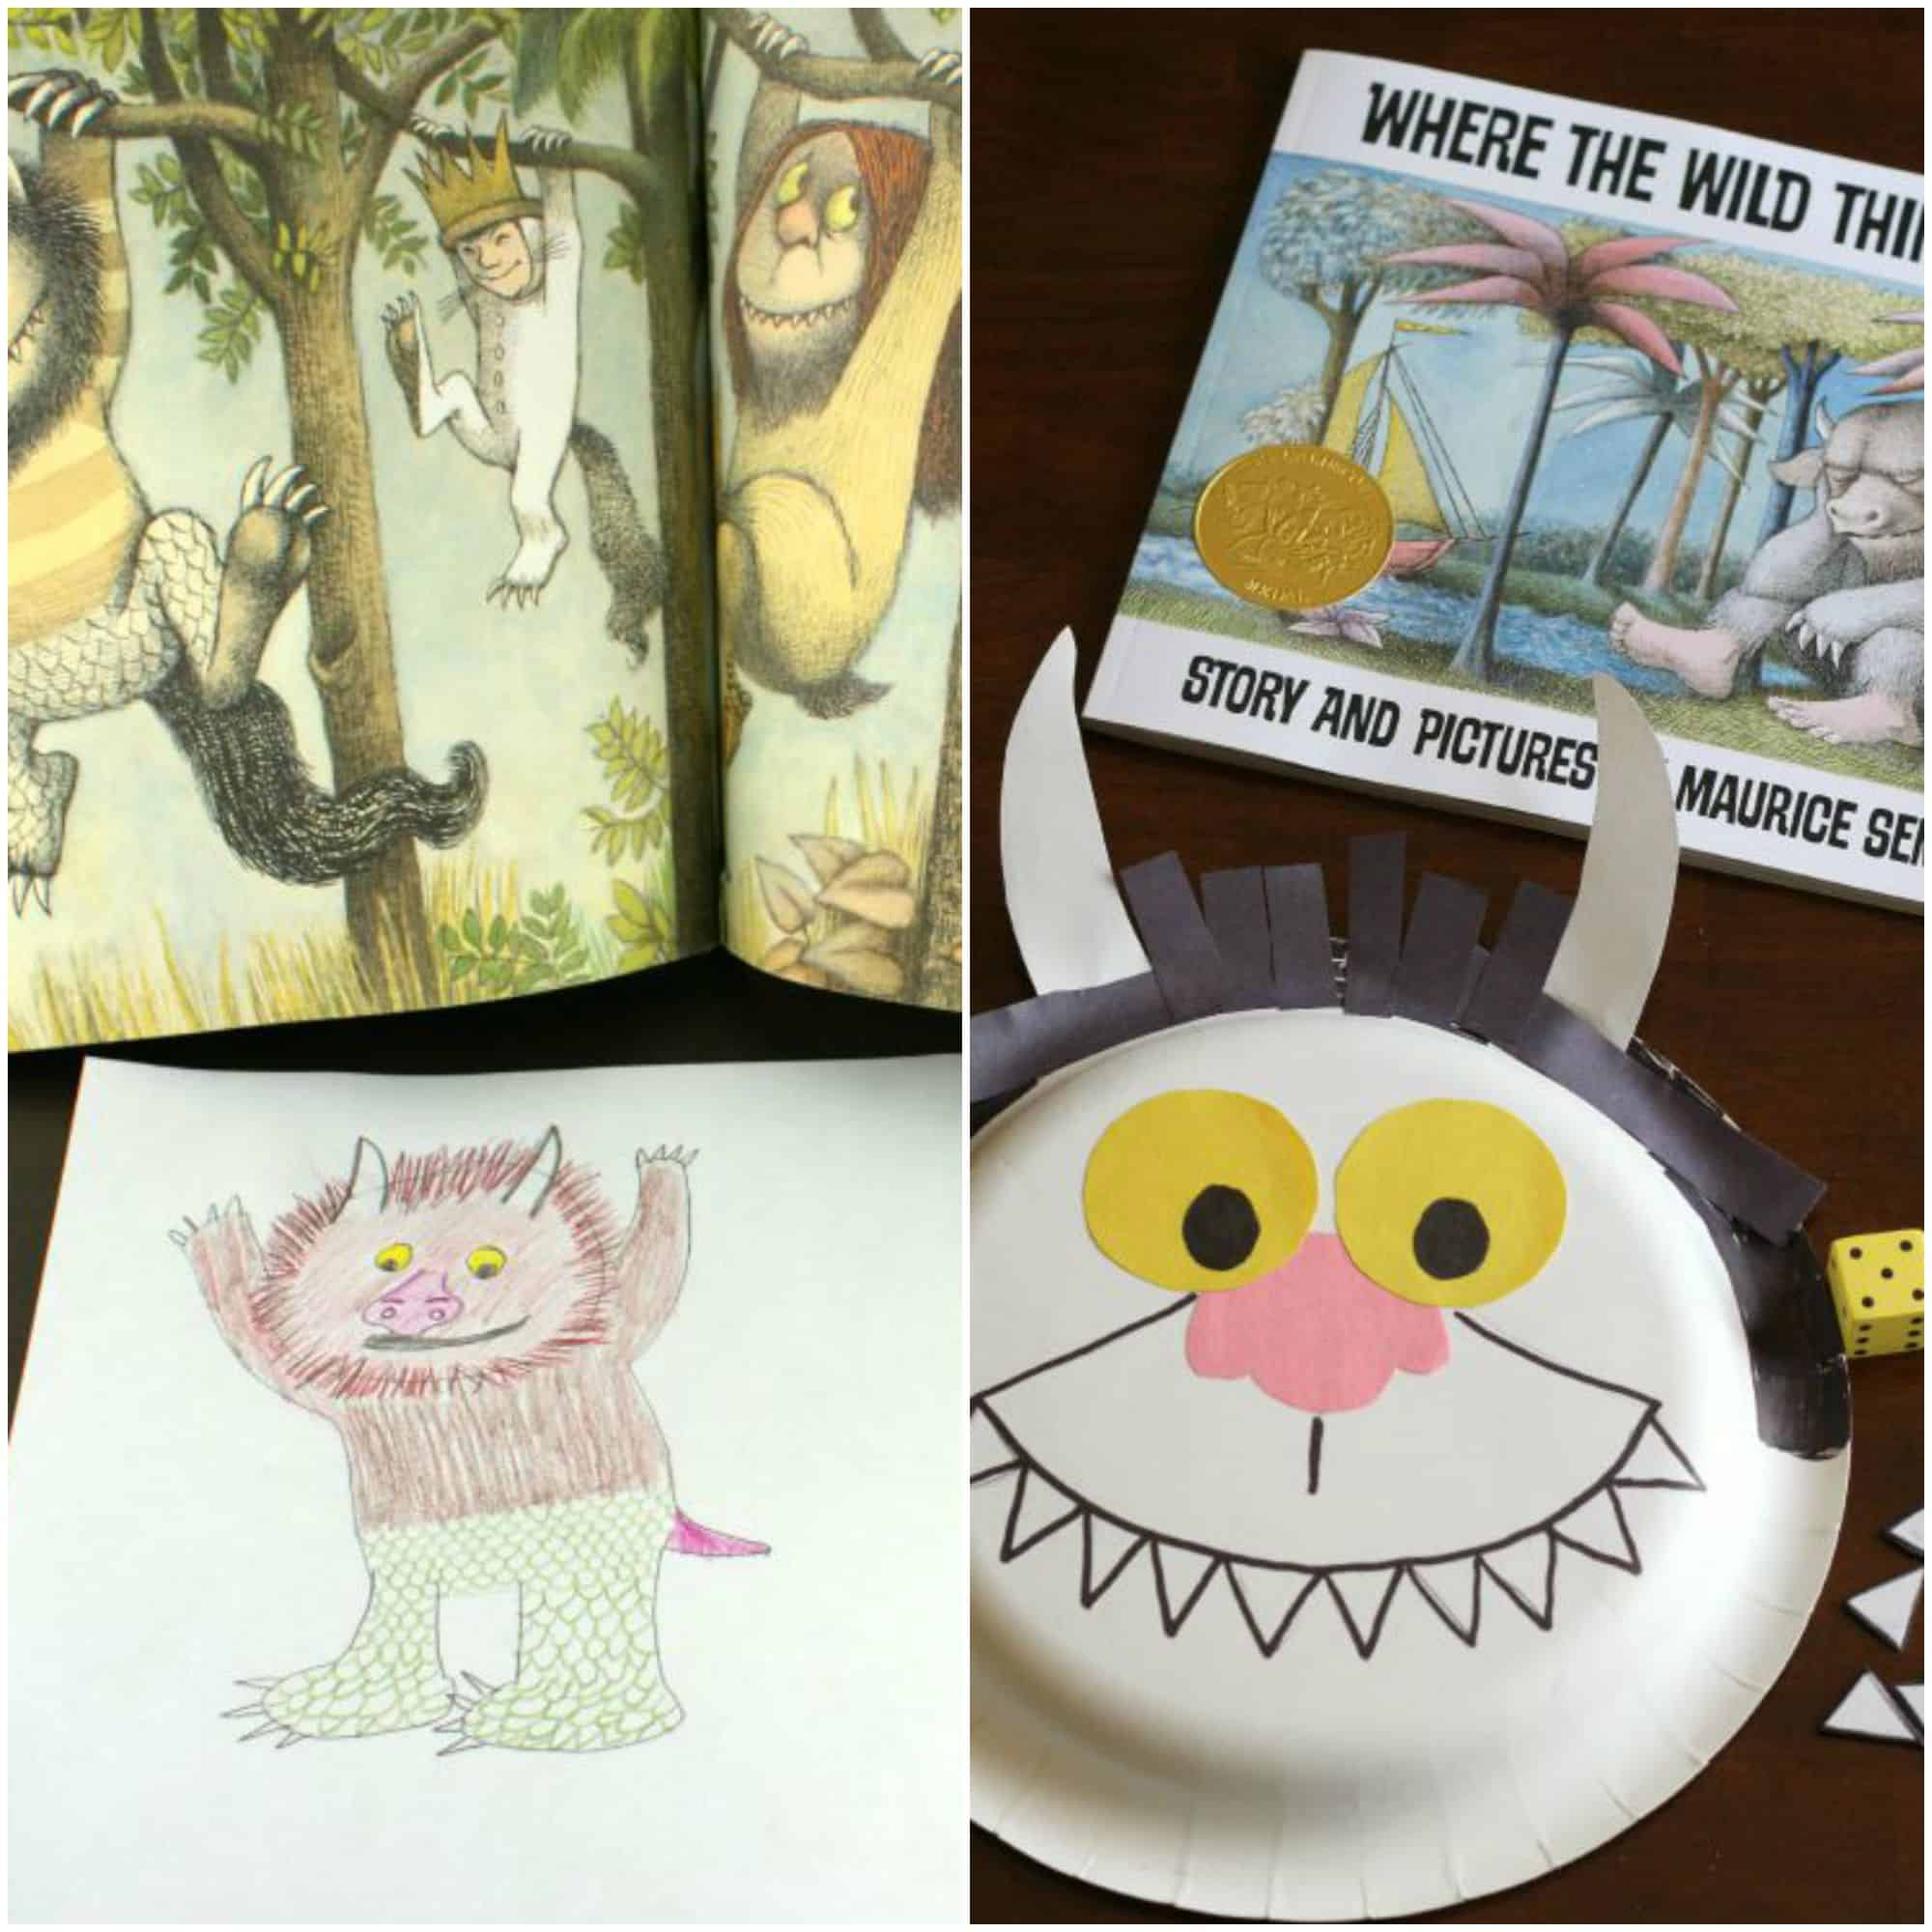 Where the wild things are crafts and activities i can teach my child